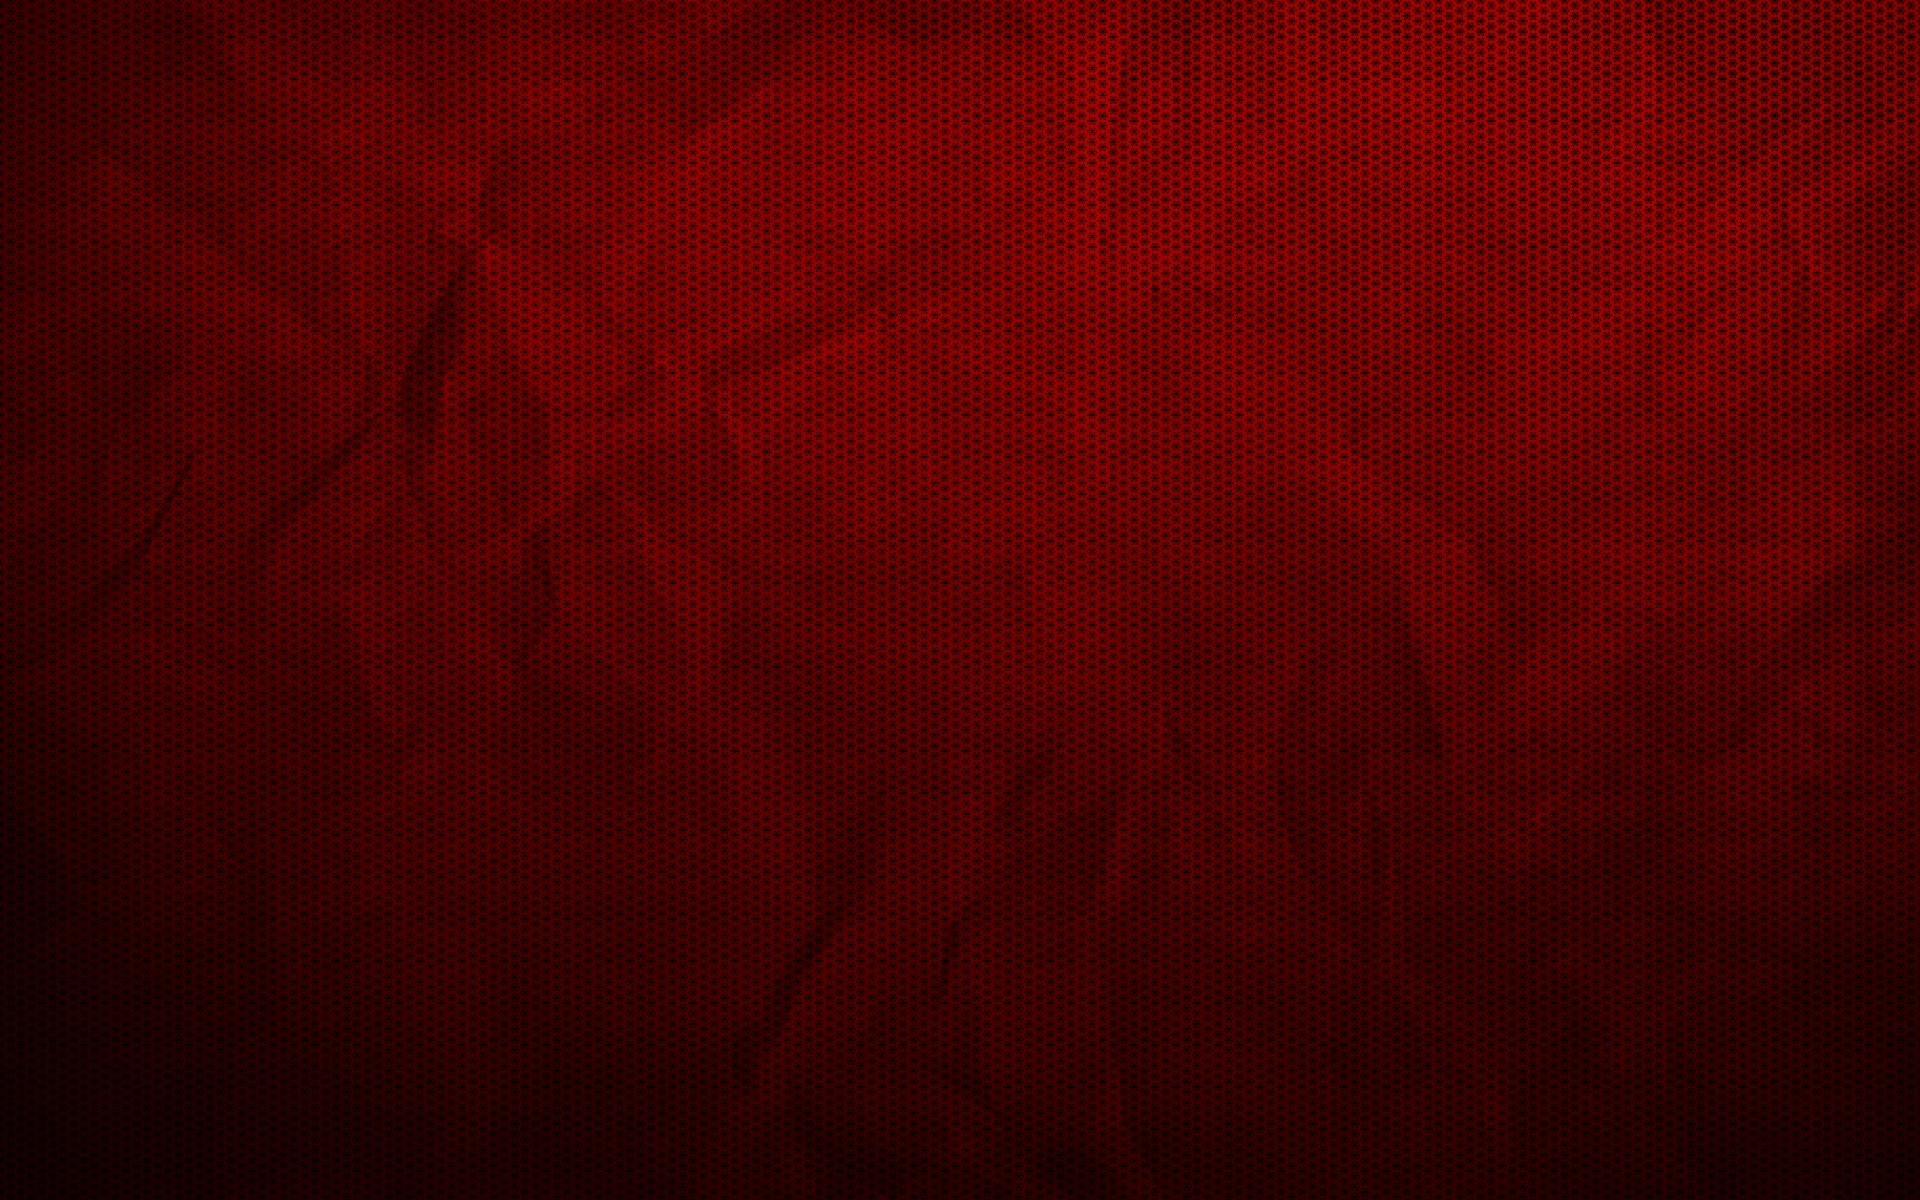 red color plain background hd wallpapers gallery | Black Background ...